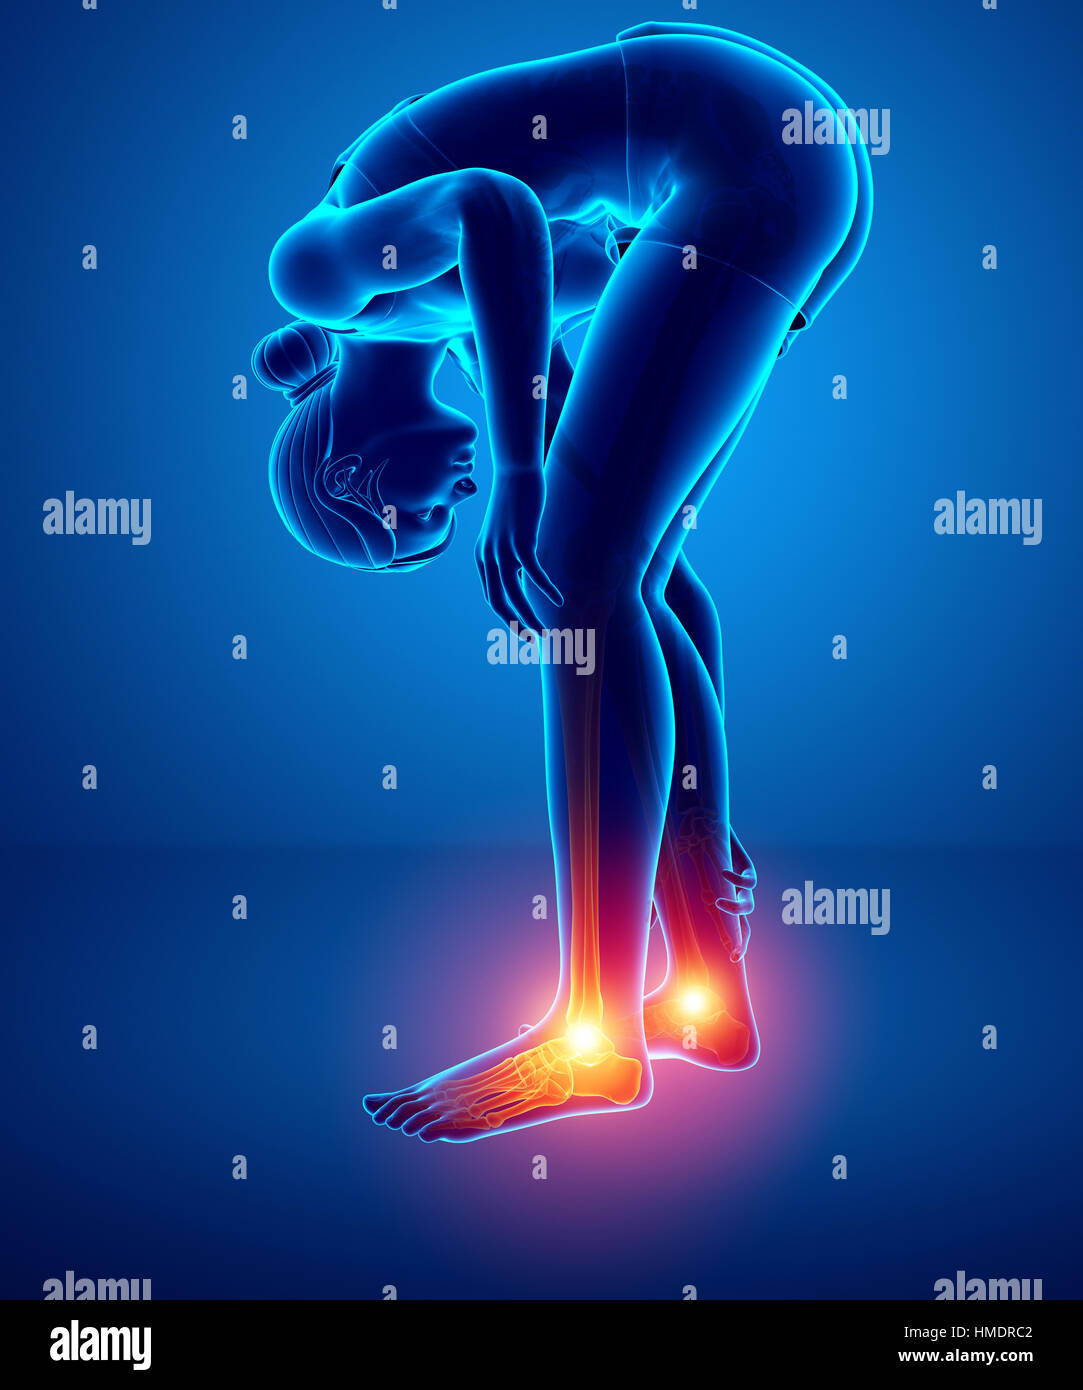 Club Foot Anatomy Stock Photos Club Foot Anatomy Stock Images